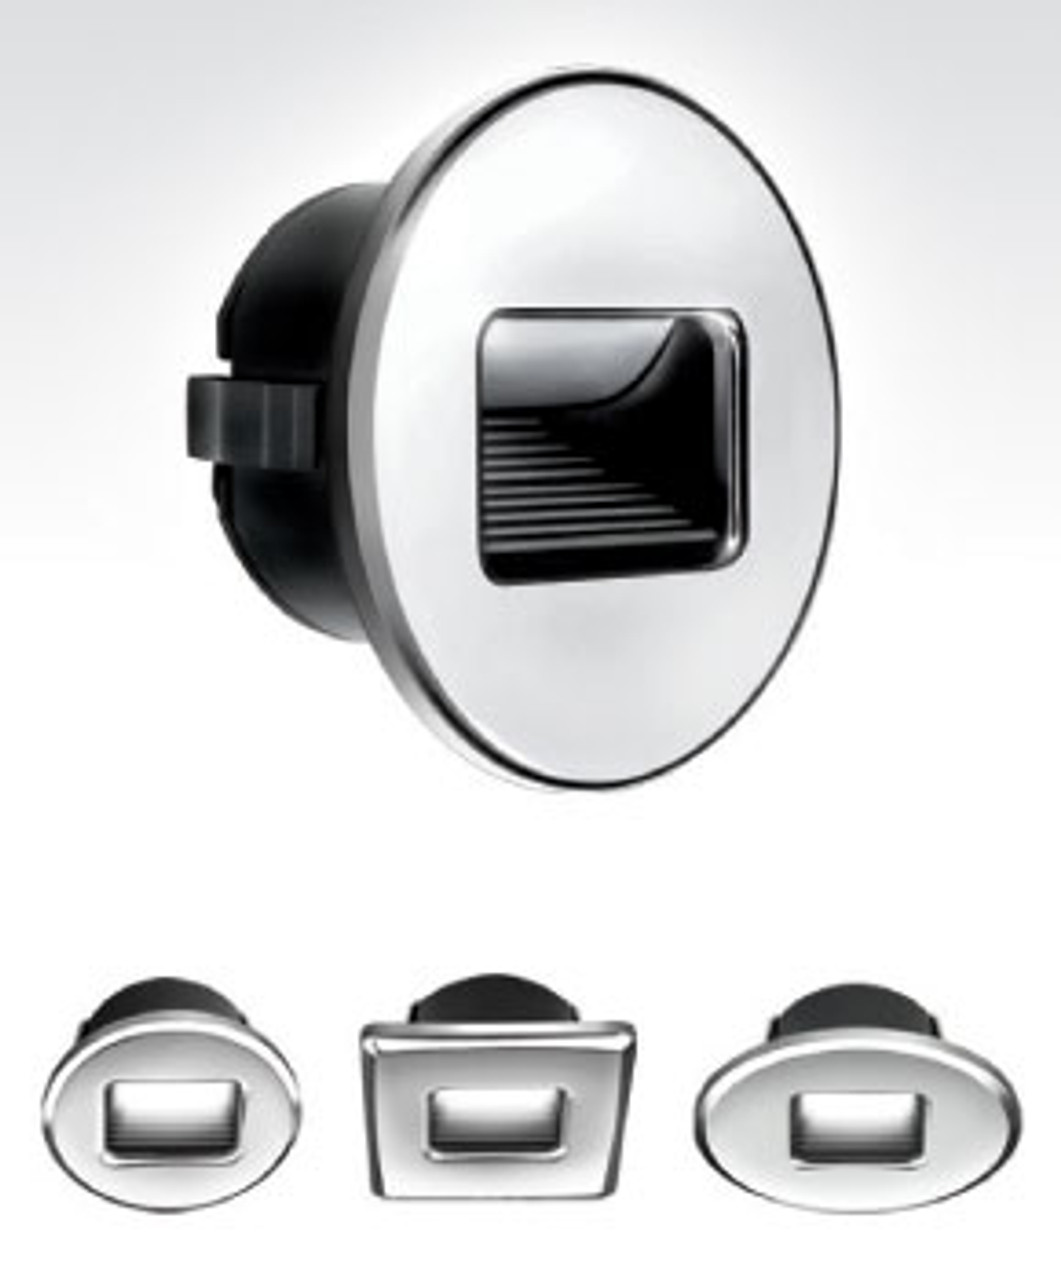 Accent and Utility Light for Boats Chrome Plated Plastic Fixed Mount Courtesy